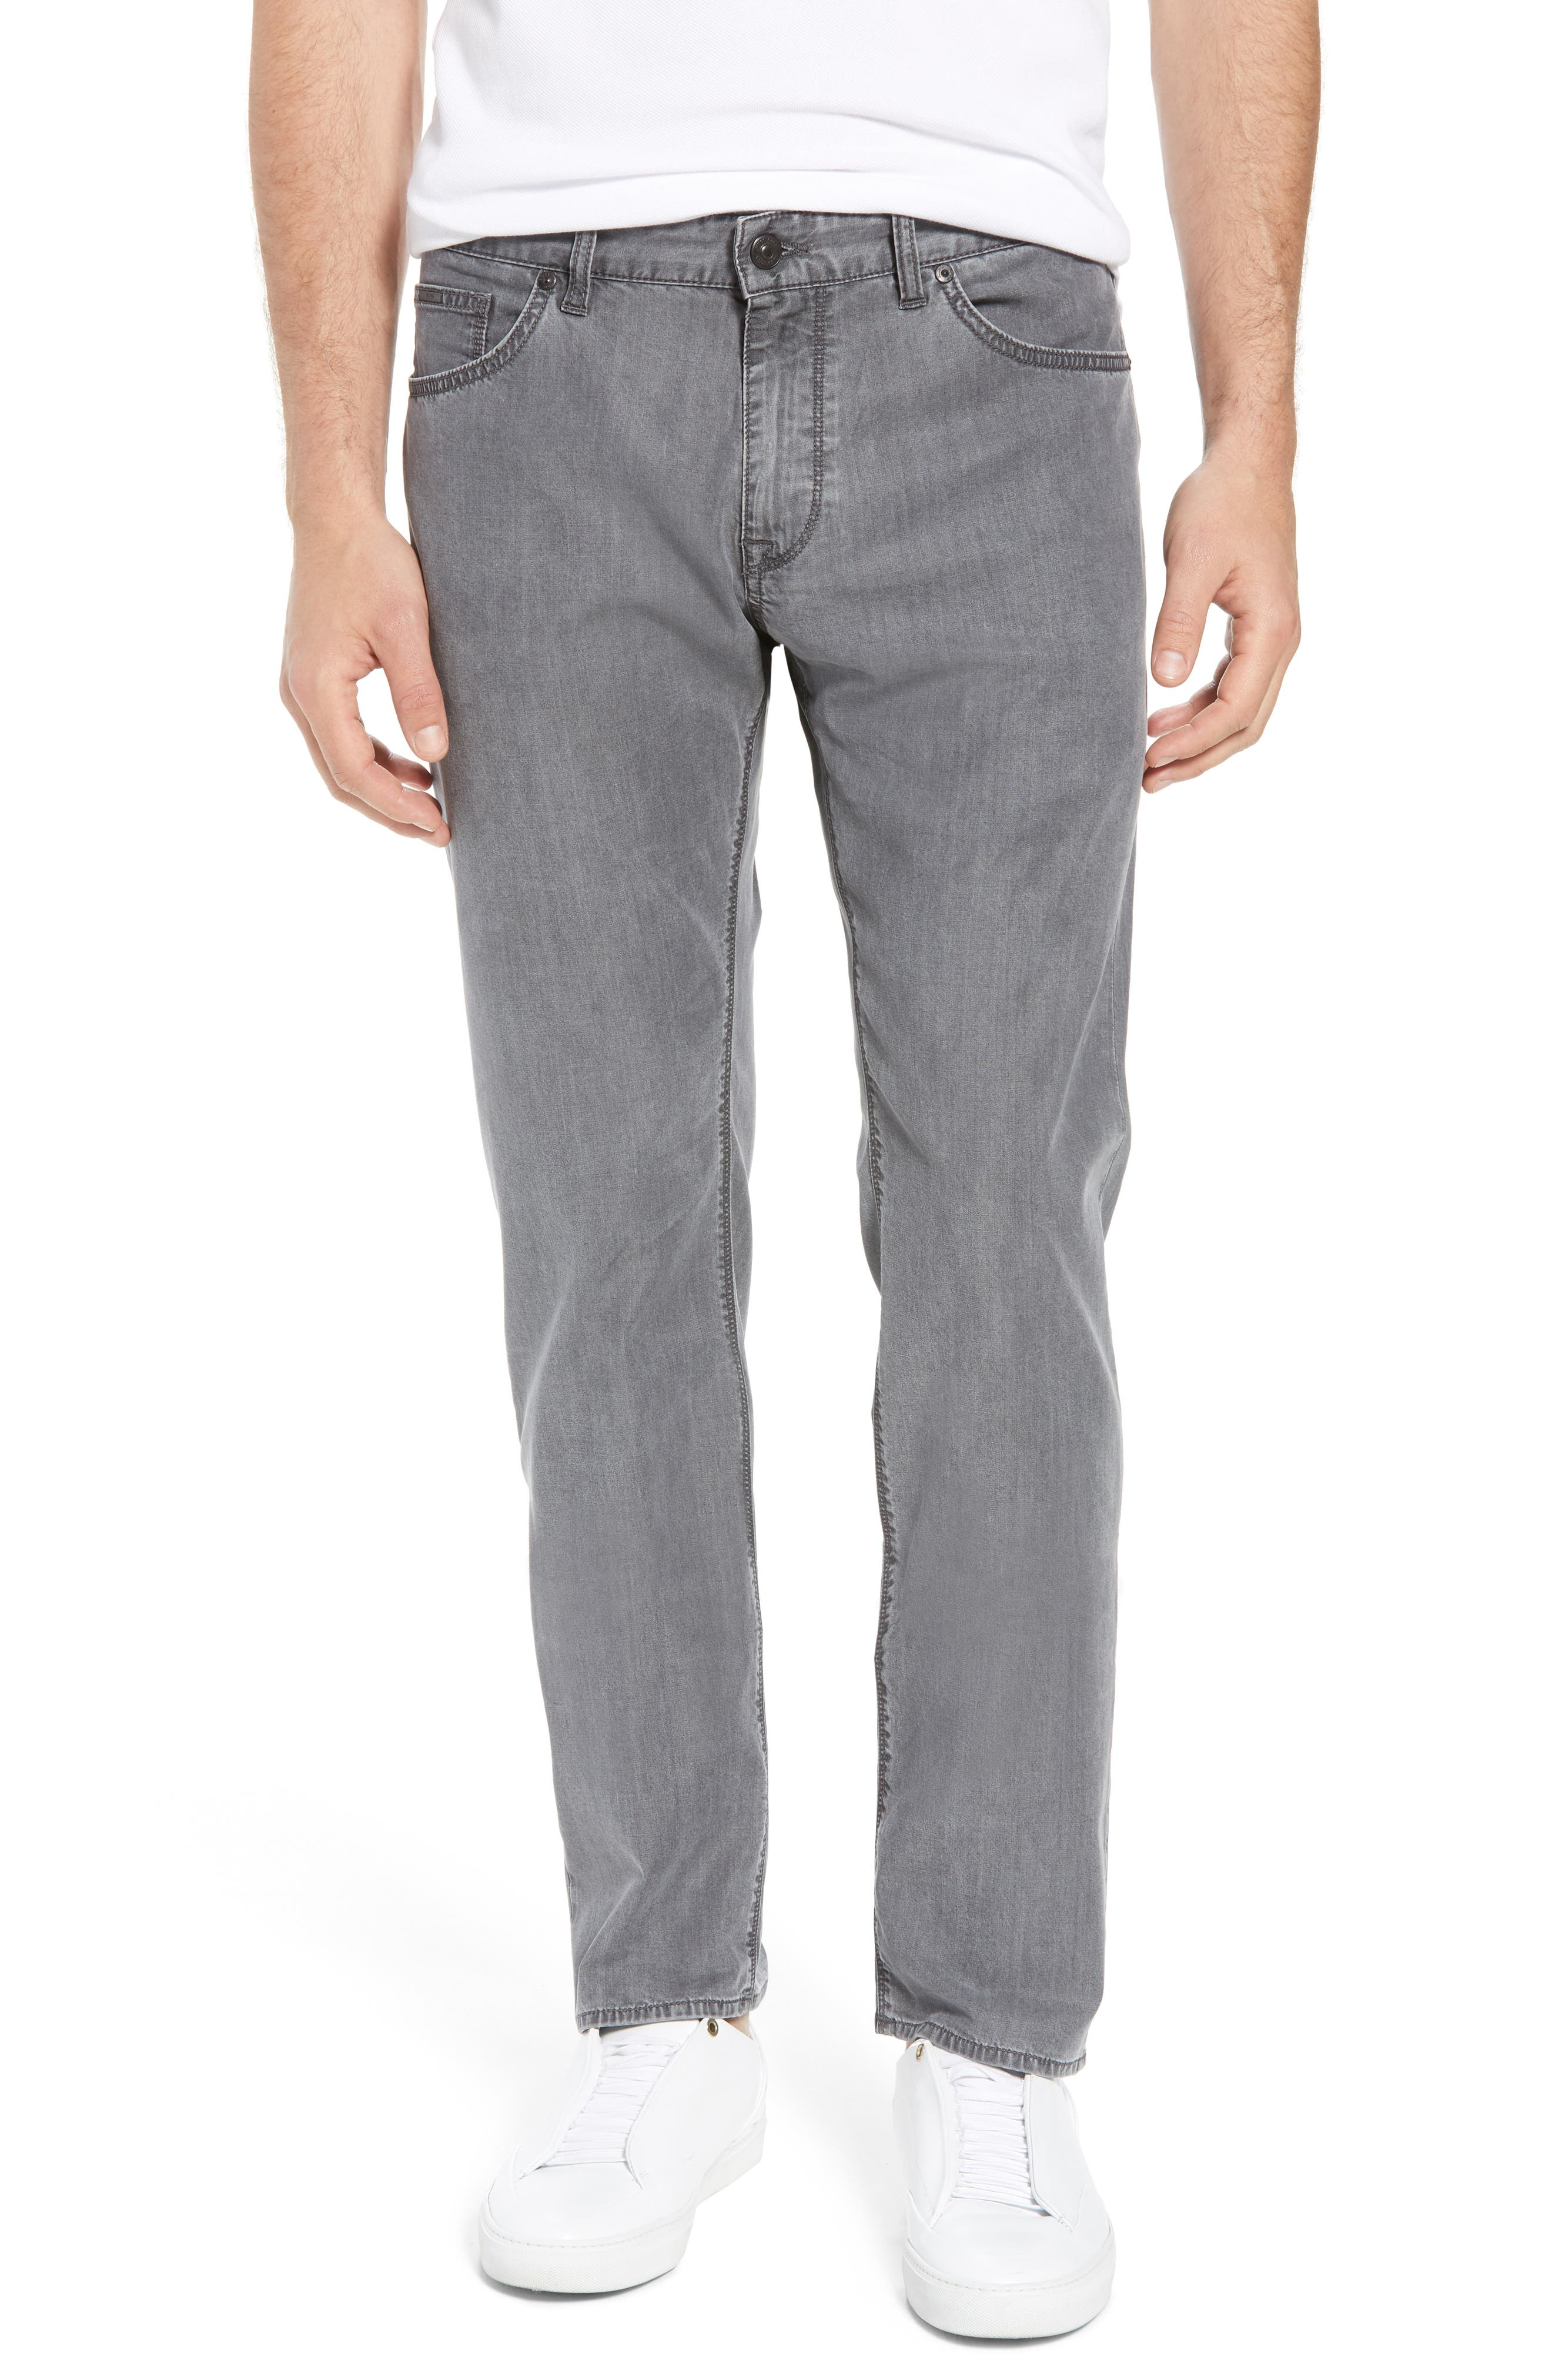 Maine Classic Fit Jeans,                             Main thumbnail 1, color,                             GREY